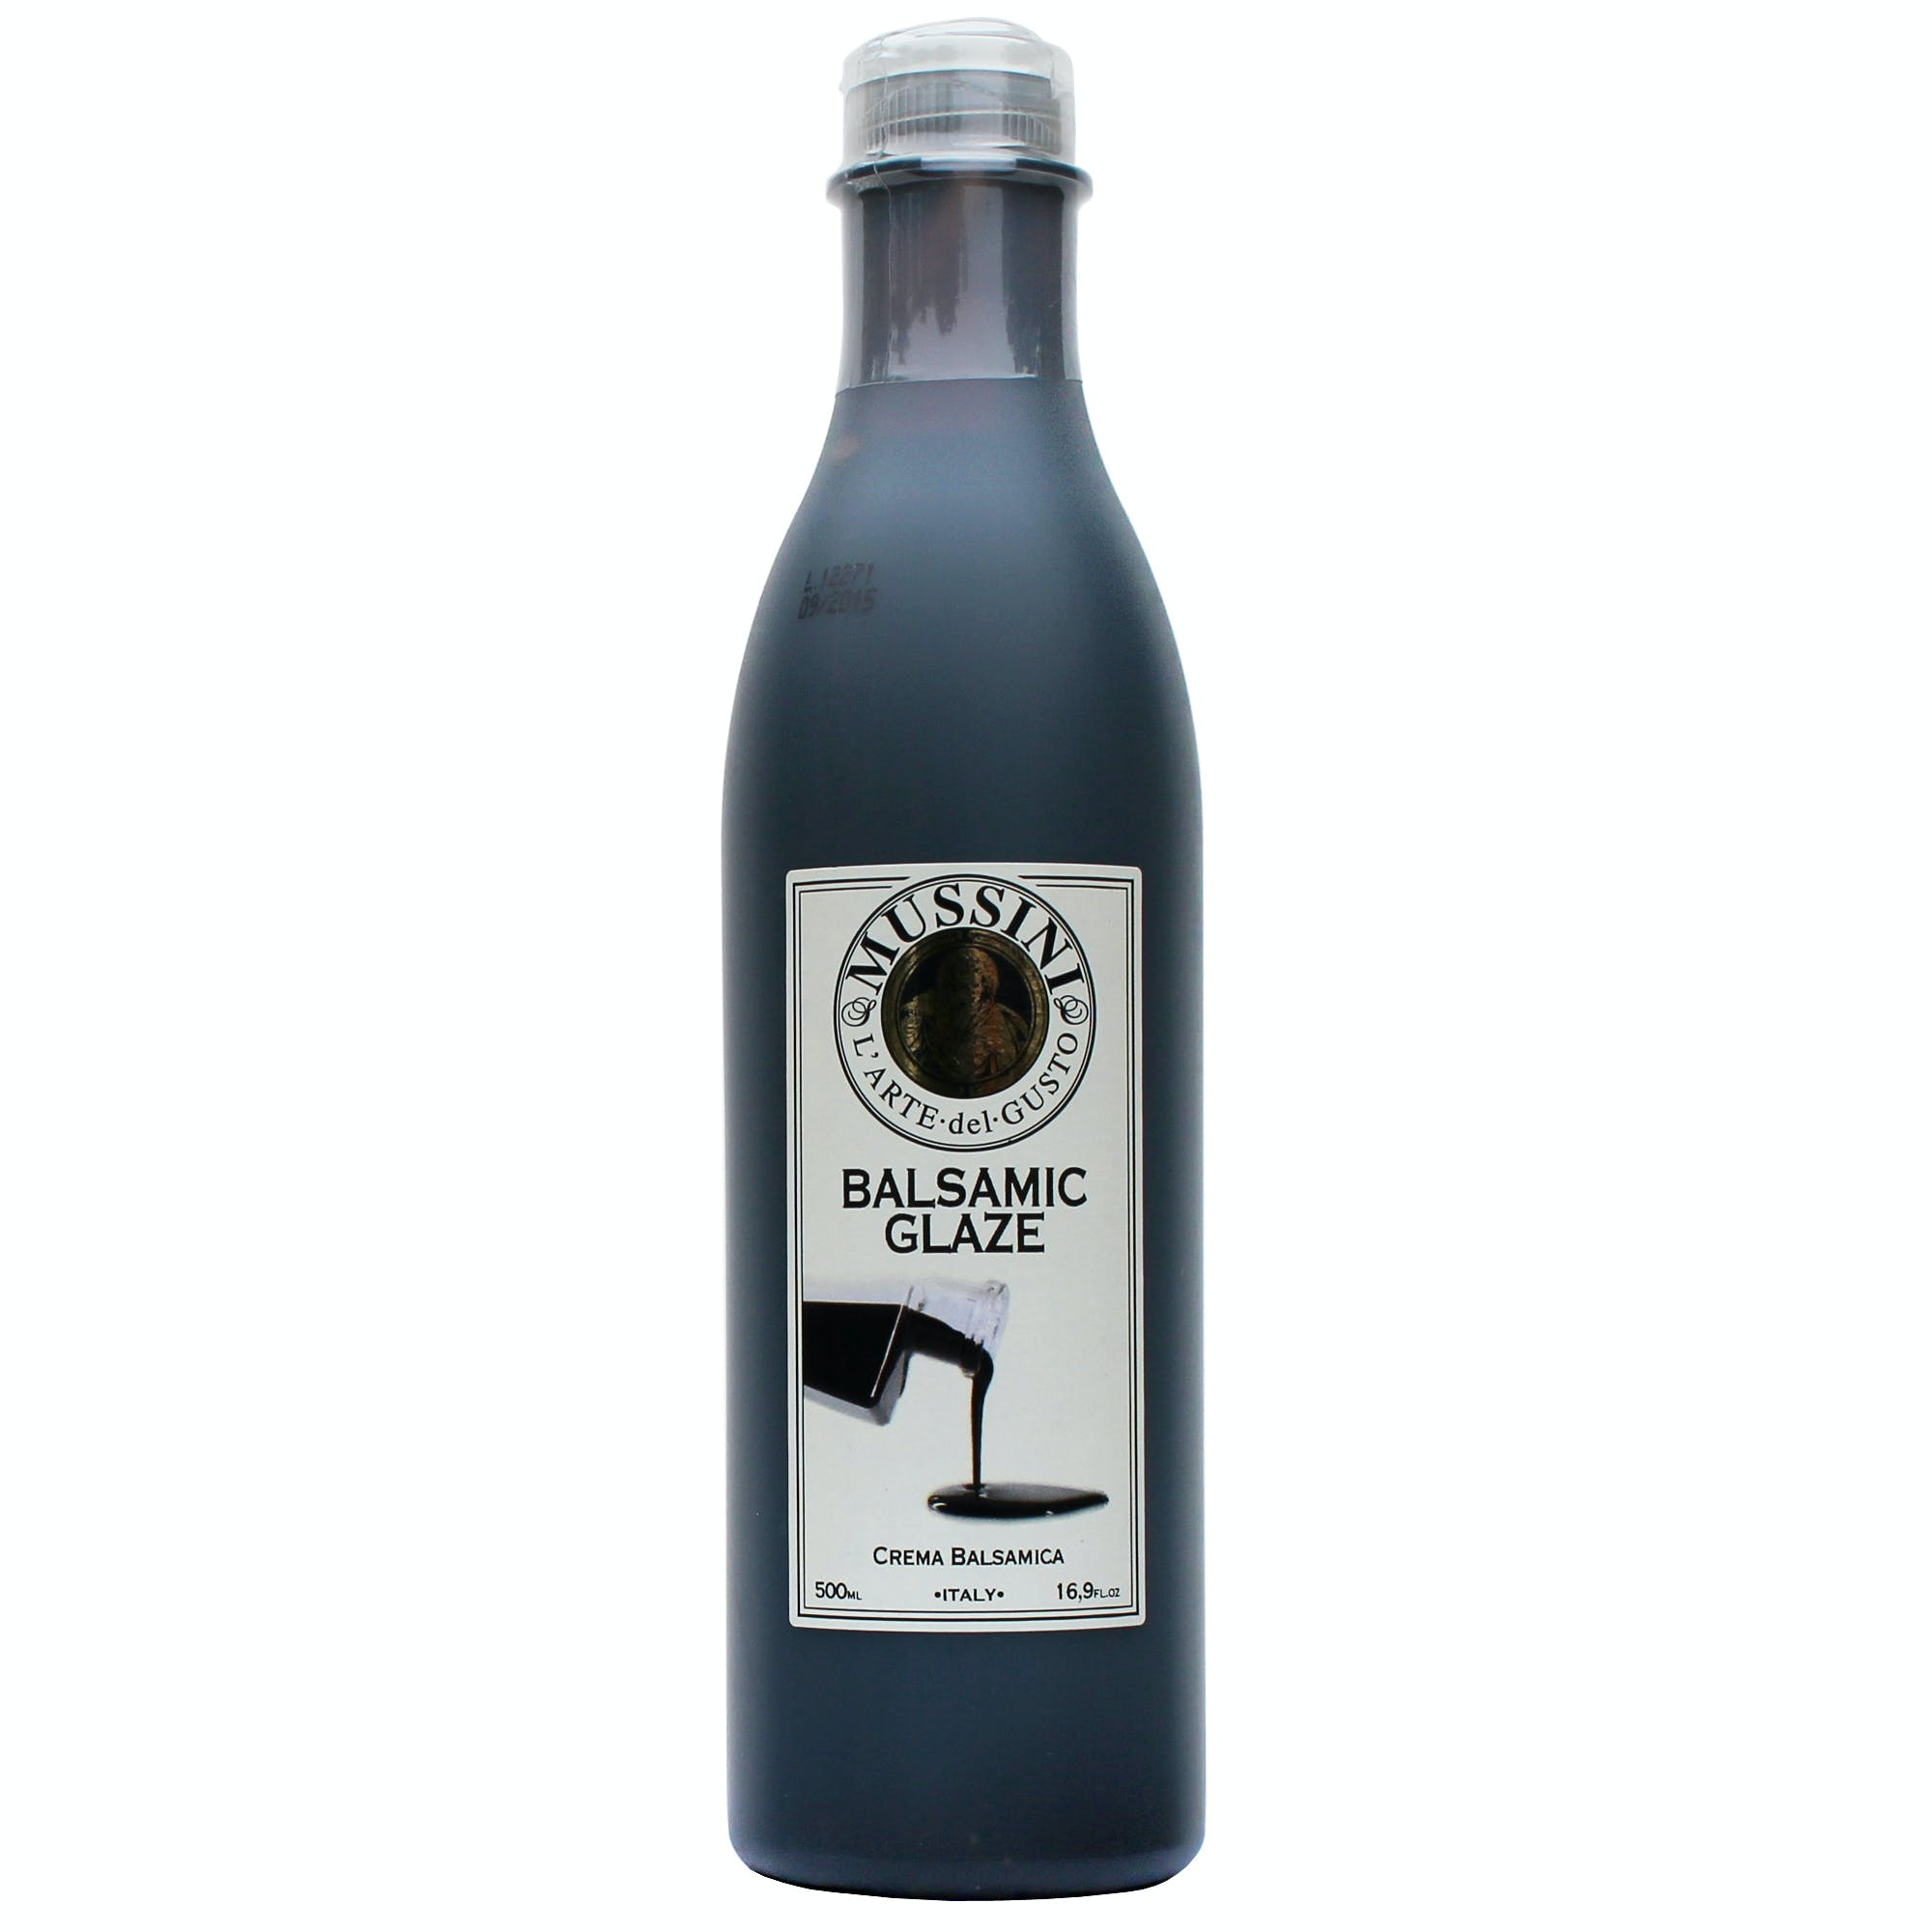 Italian Dark Balsamic Glazes From Mussini, 16.9 Ounces Balsamic Vinegar sold by M5 Corporation